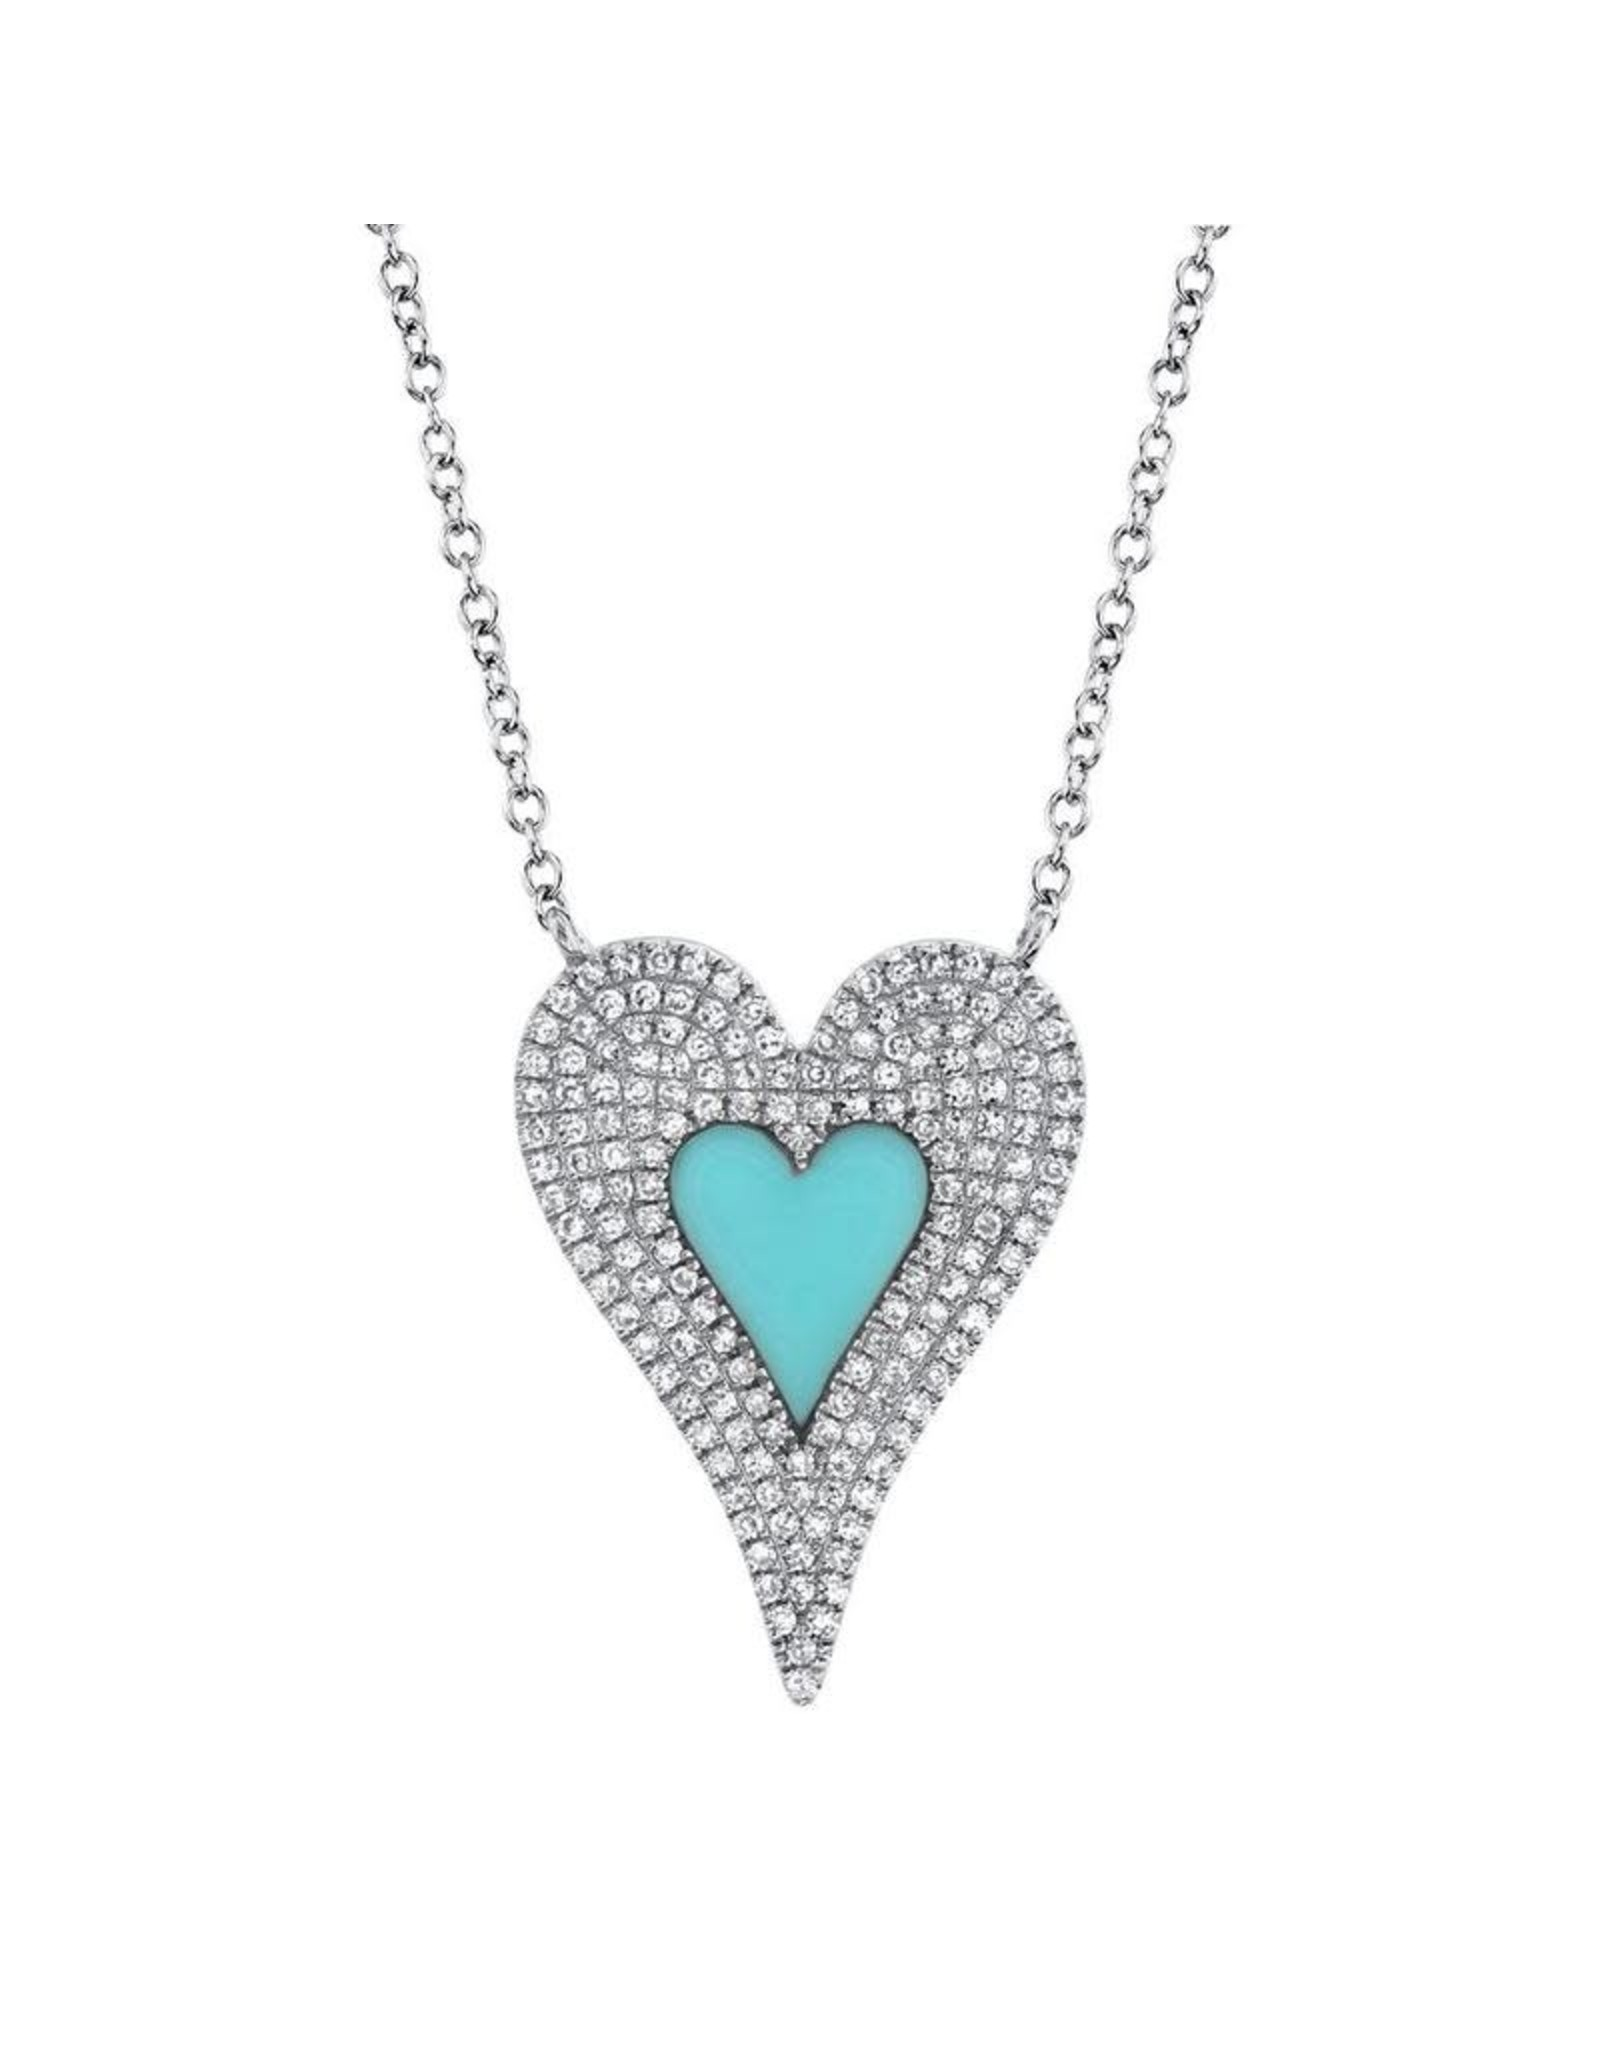 14K White Gold Turquoise and Pave Diamond Heart Necklace, TQ: 0.46ct, D: 0.38ct